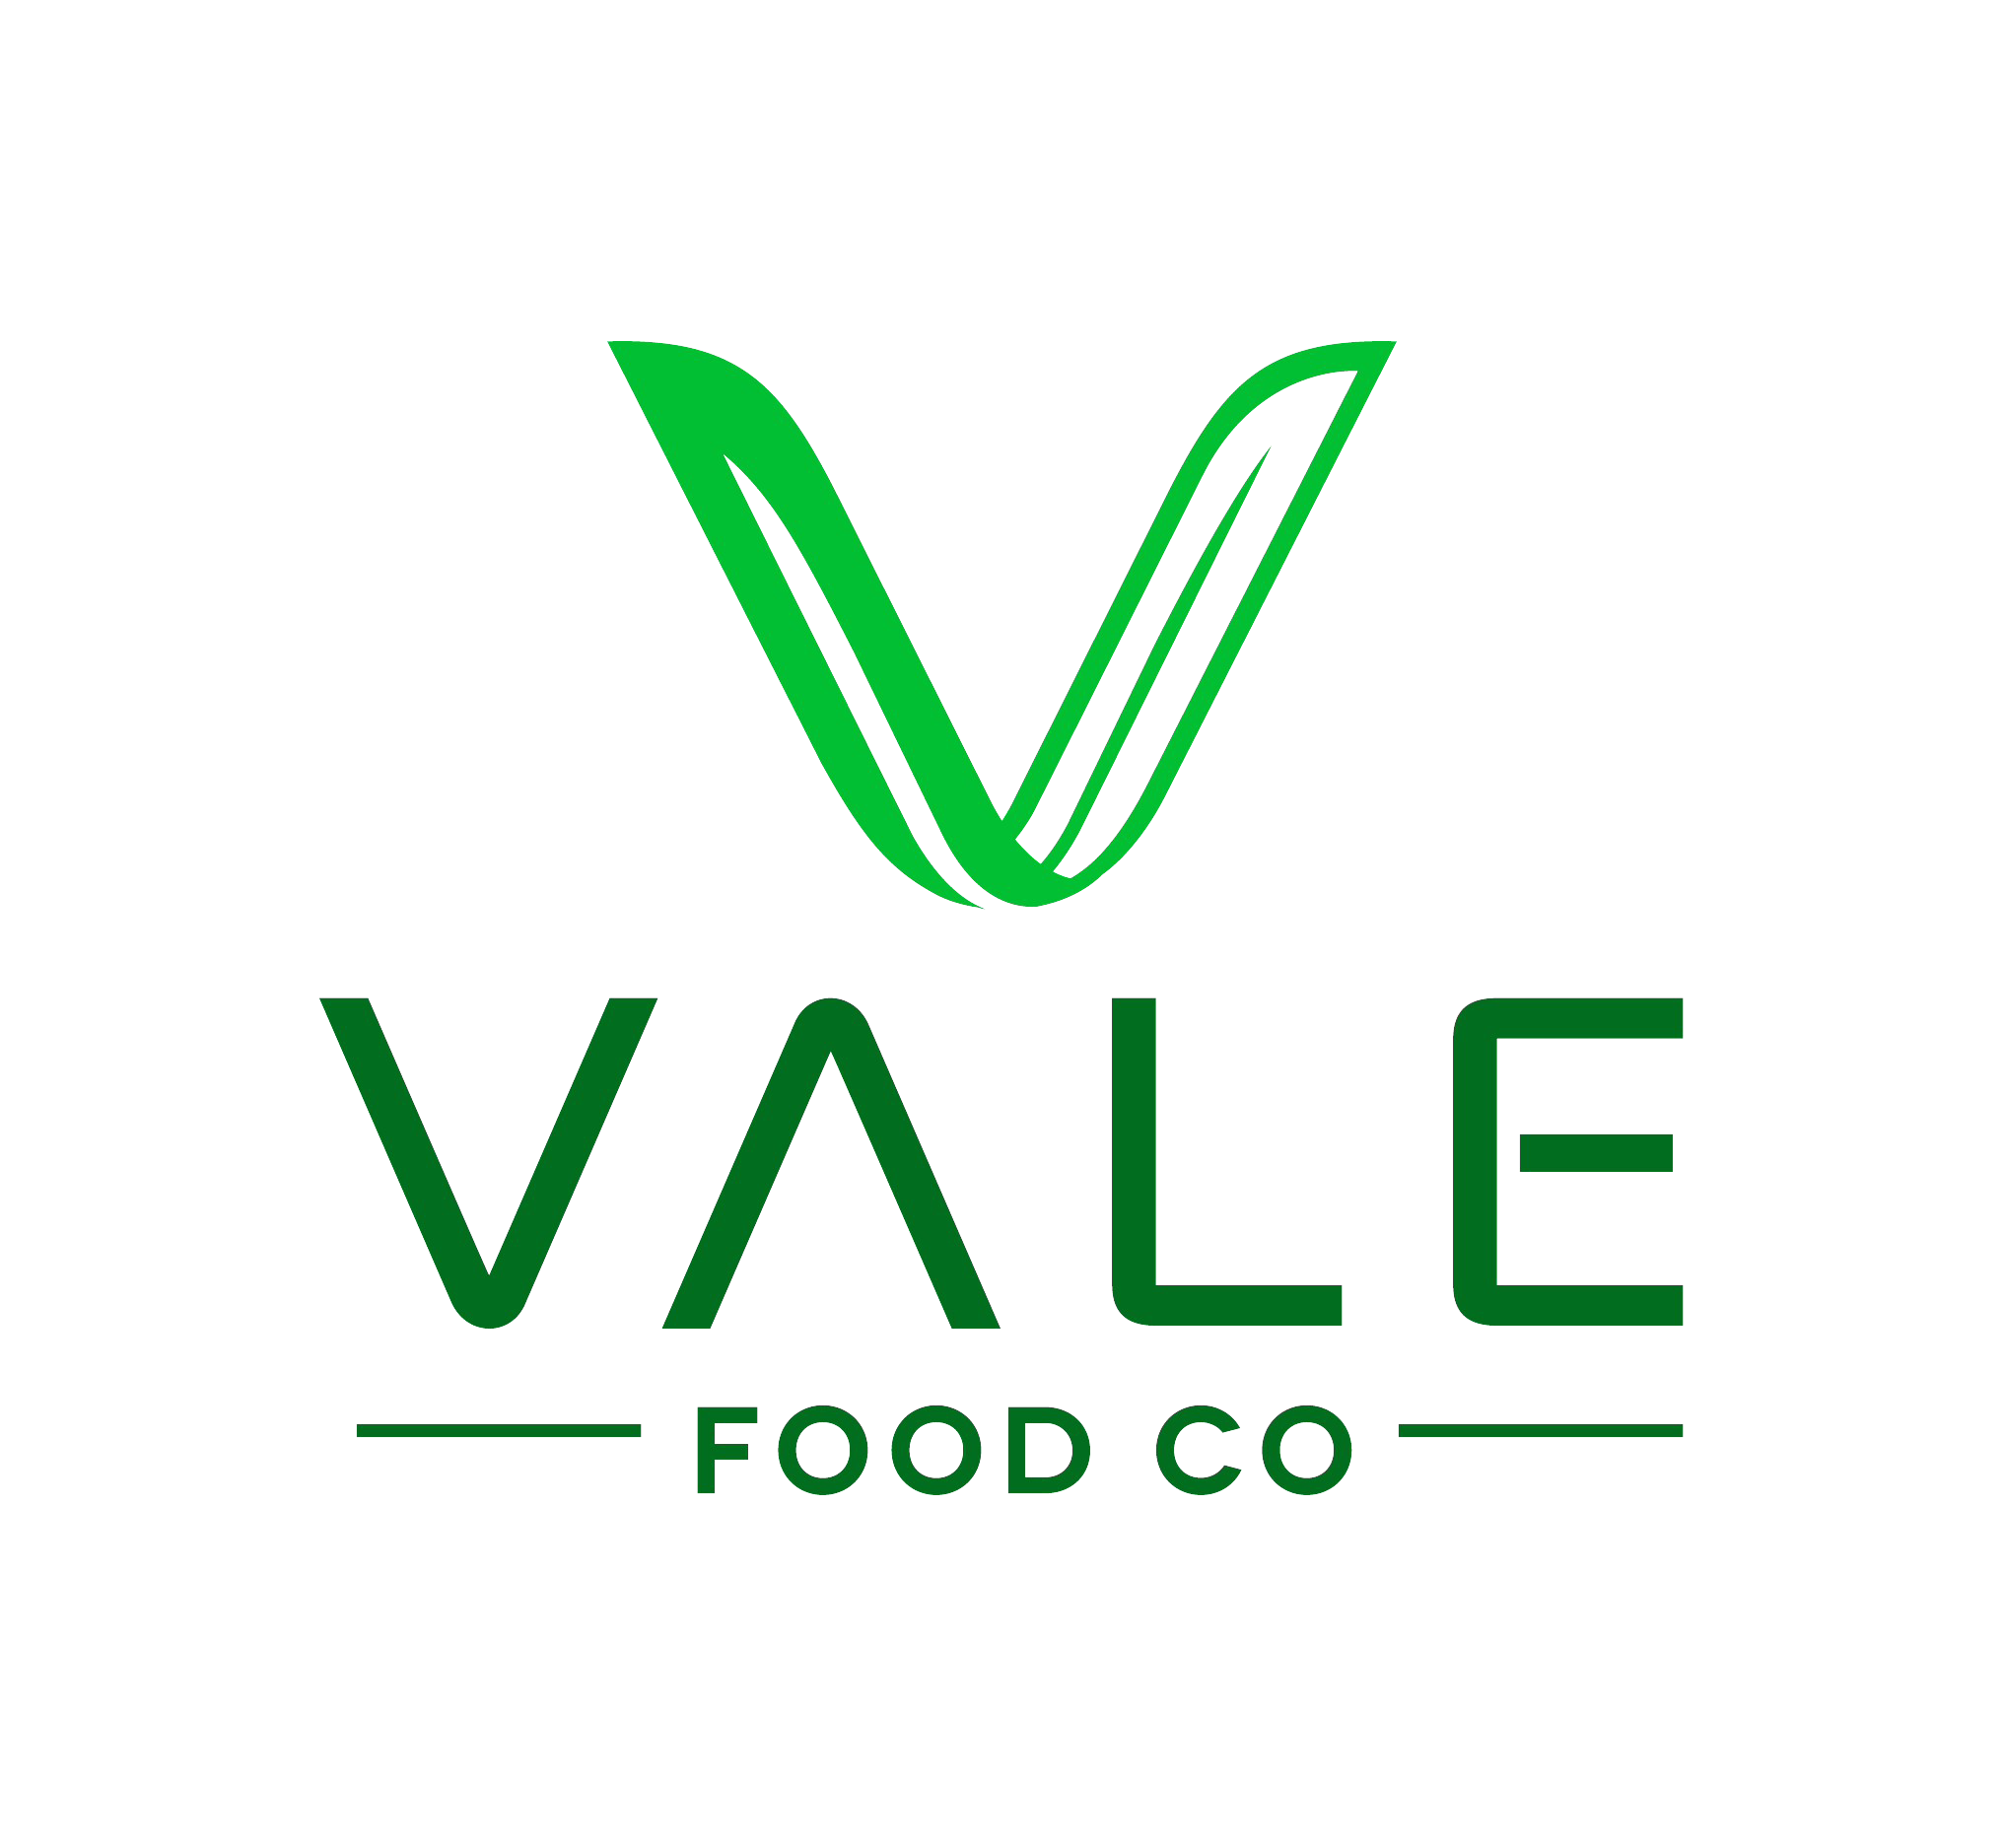 Vale Food Co. Home